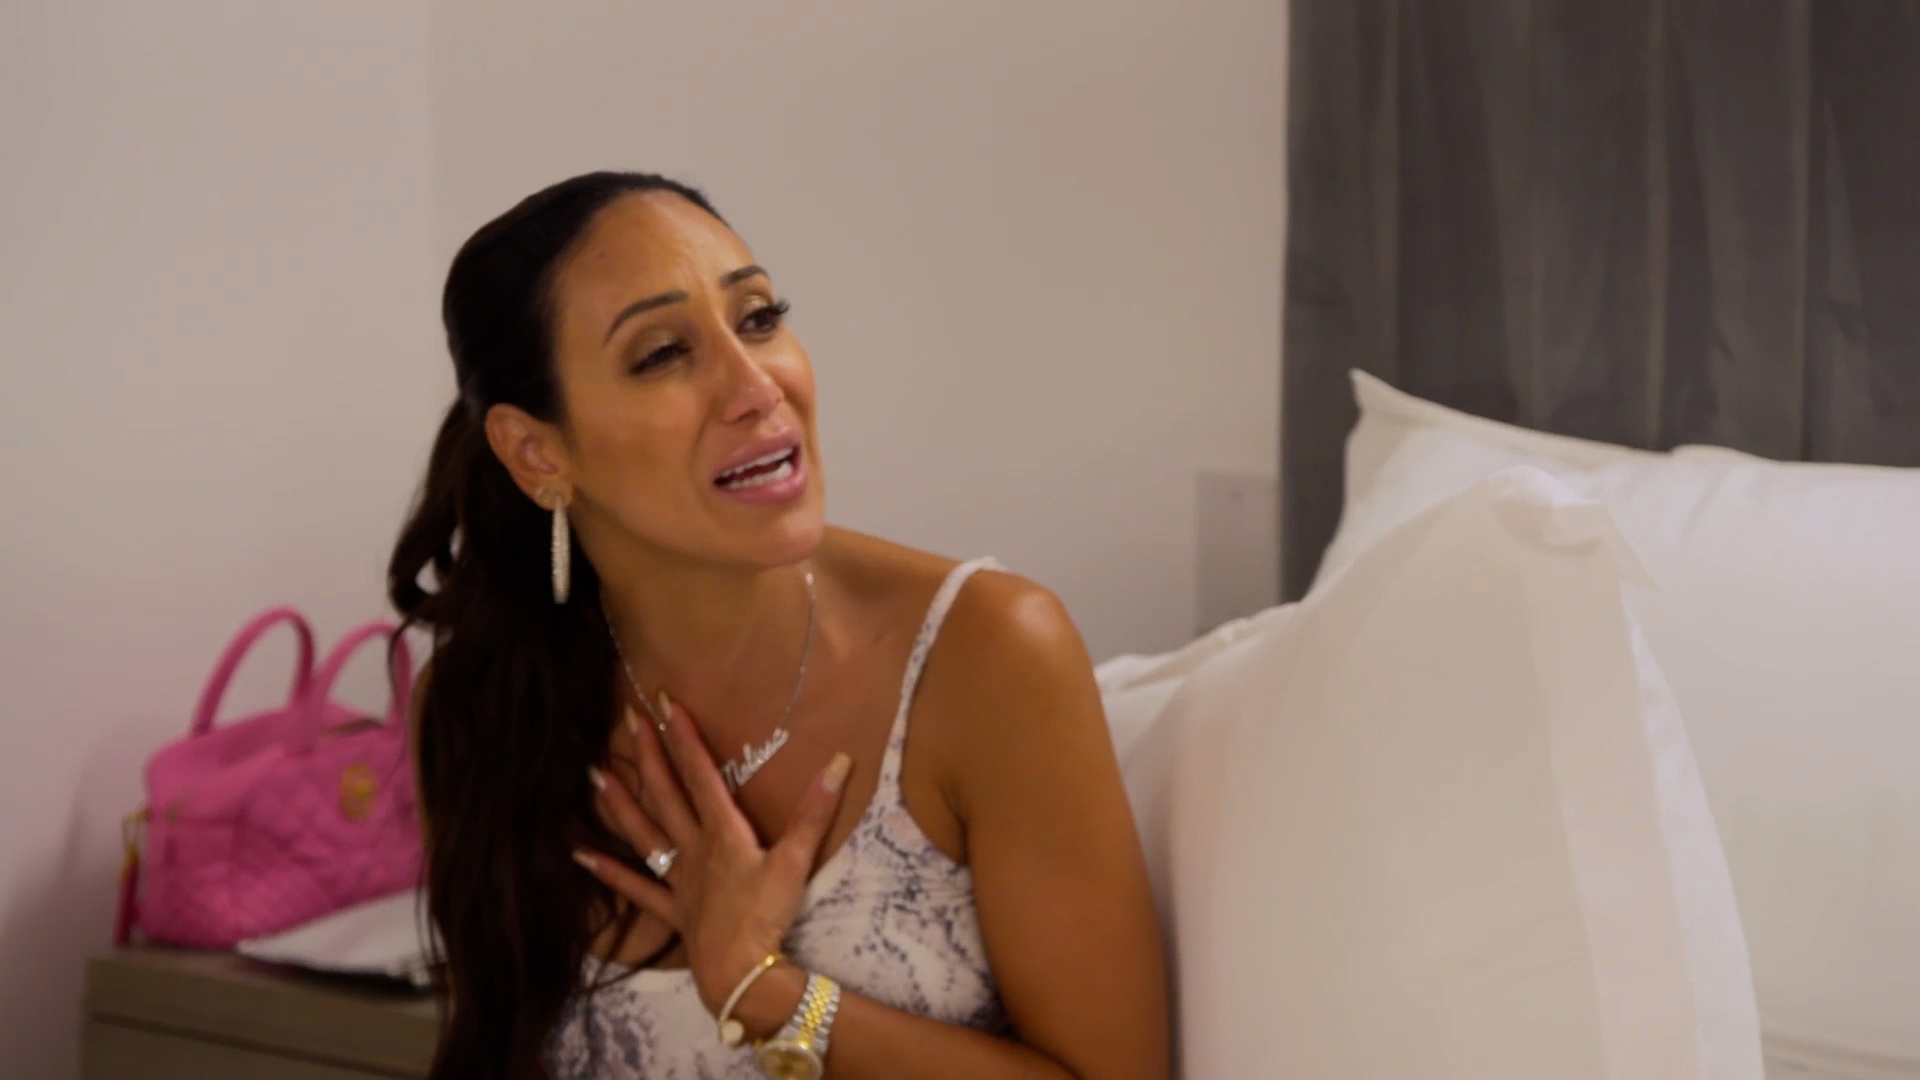 Melissa Gorga Tells Joe Gorga She's the Best He's Gonna Get